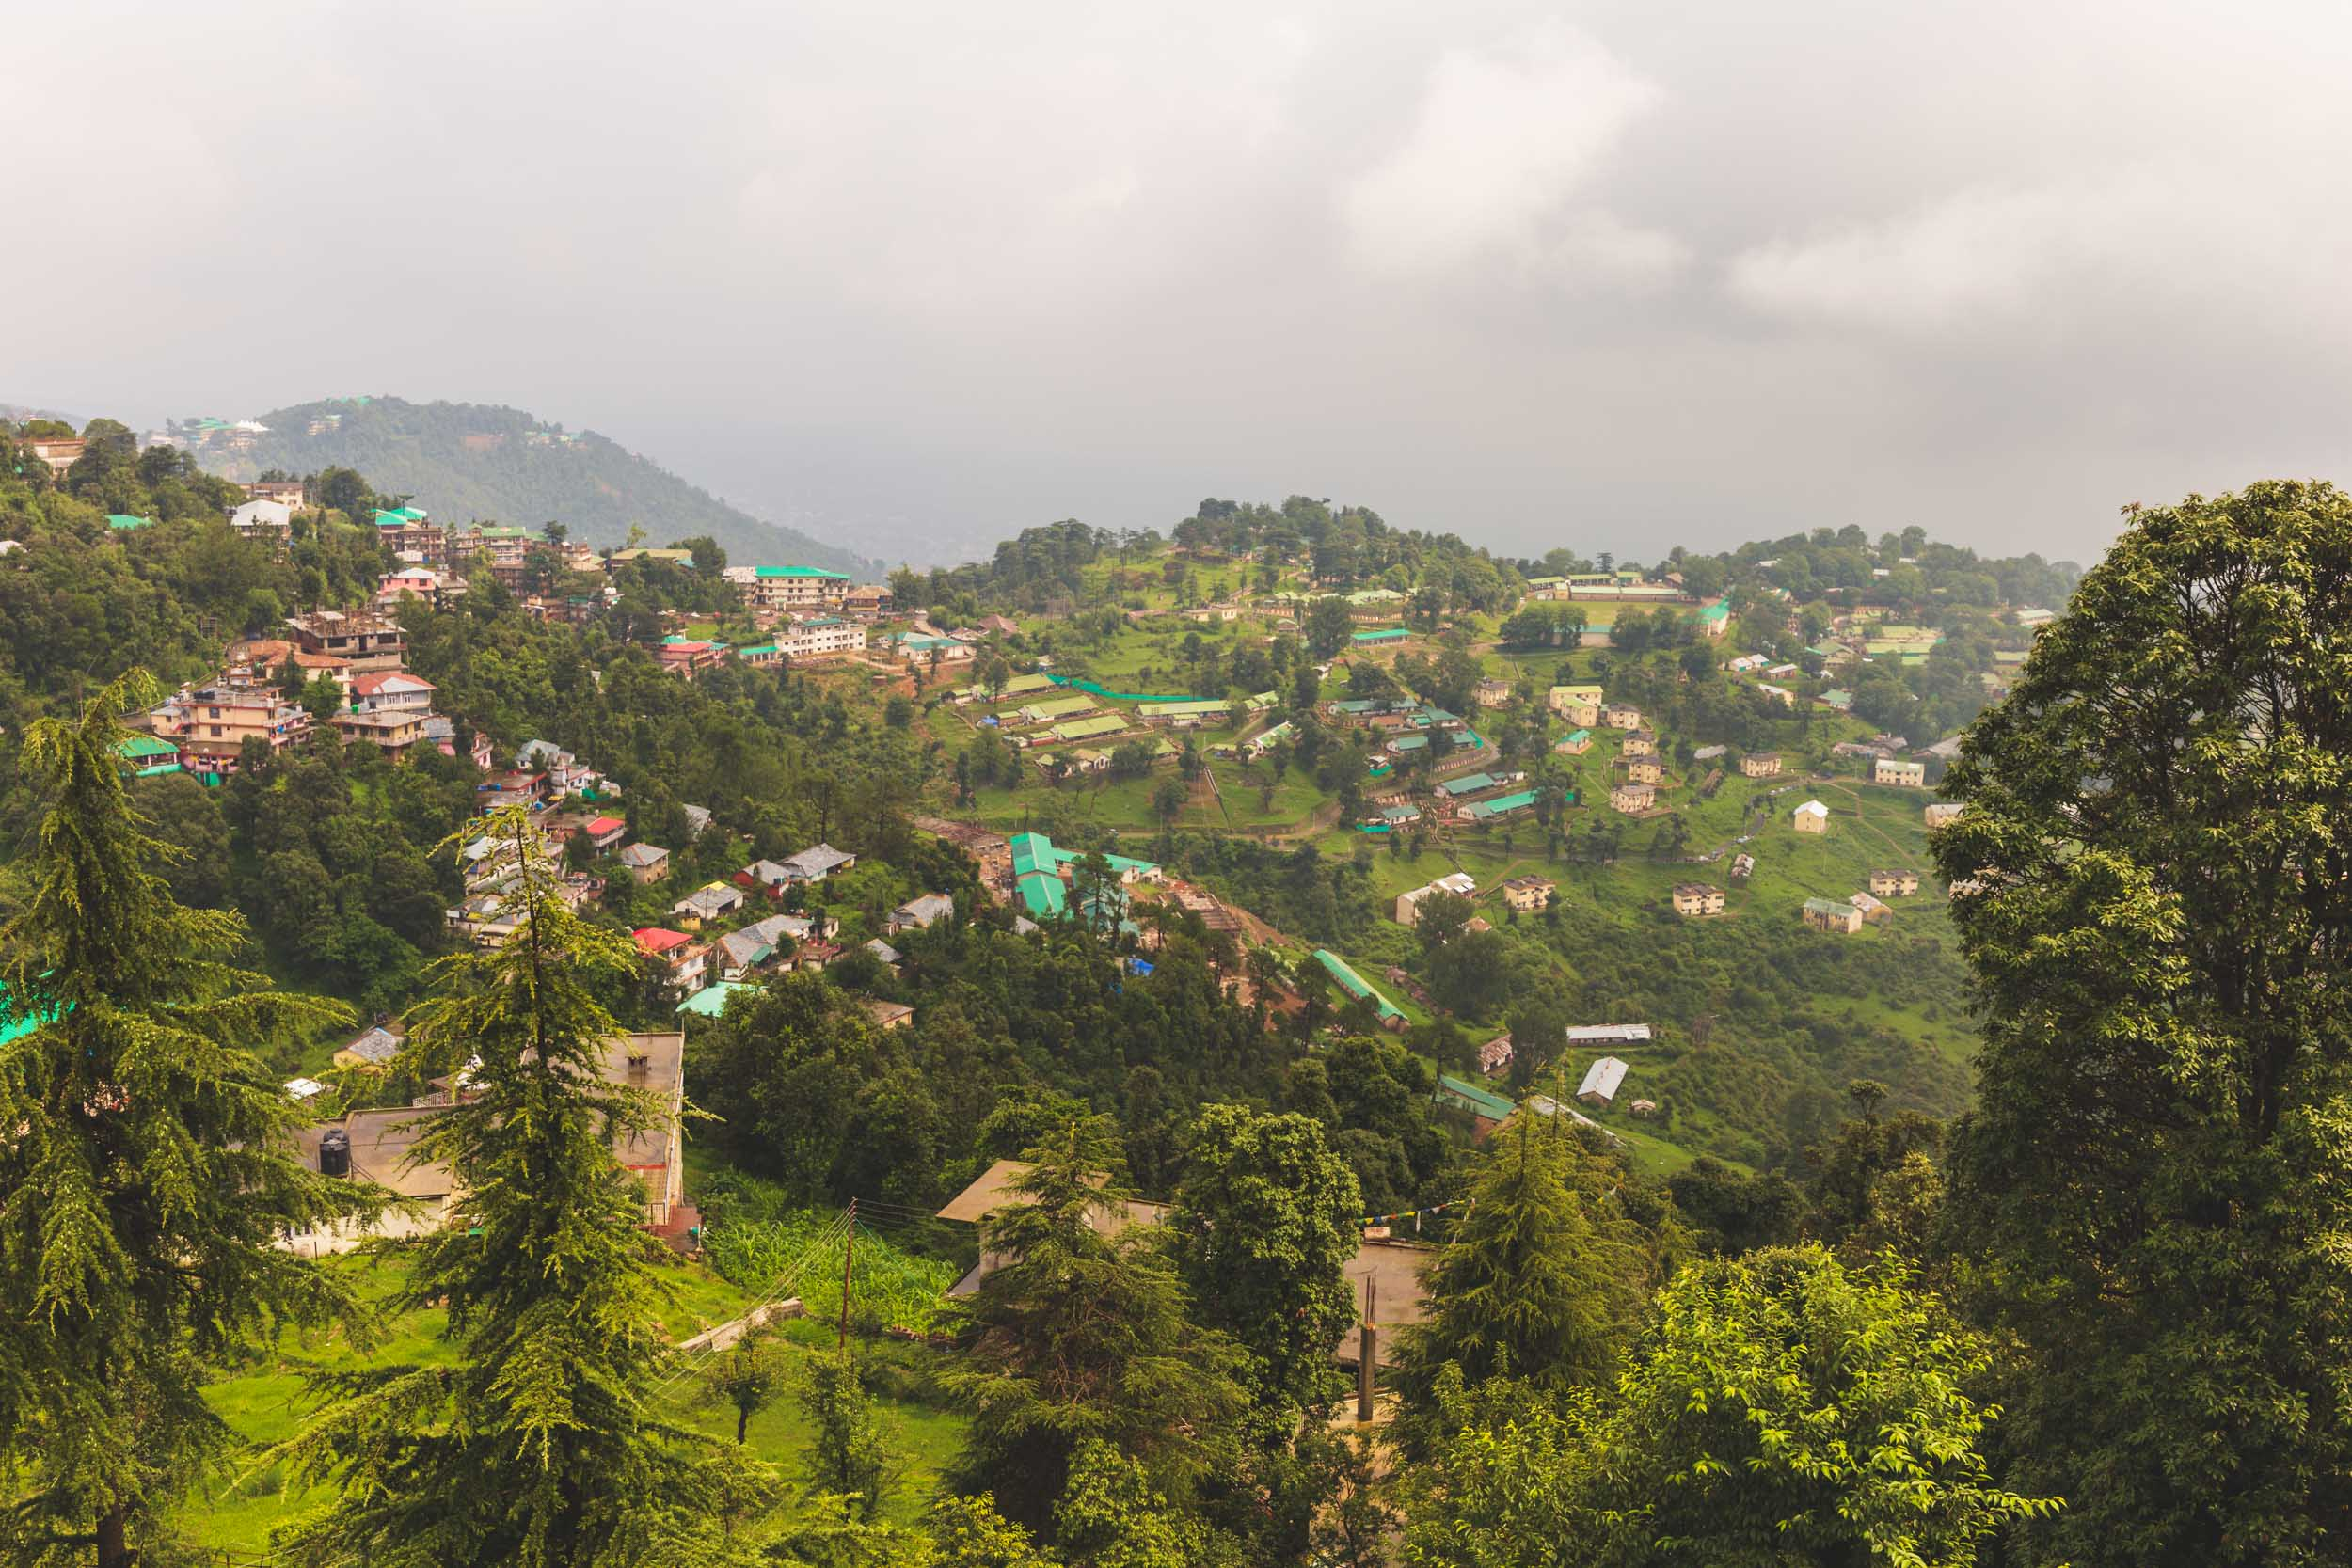 Mountain village landscape in Dharamasala, India.